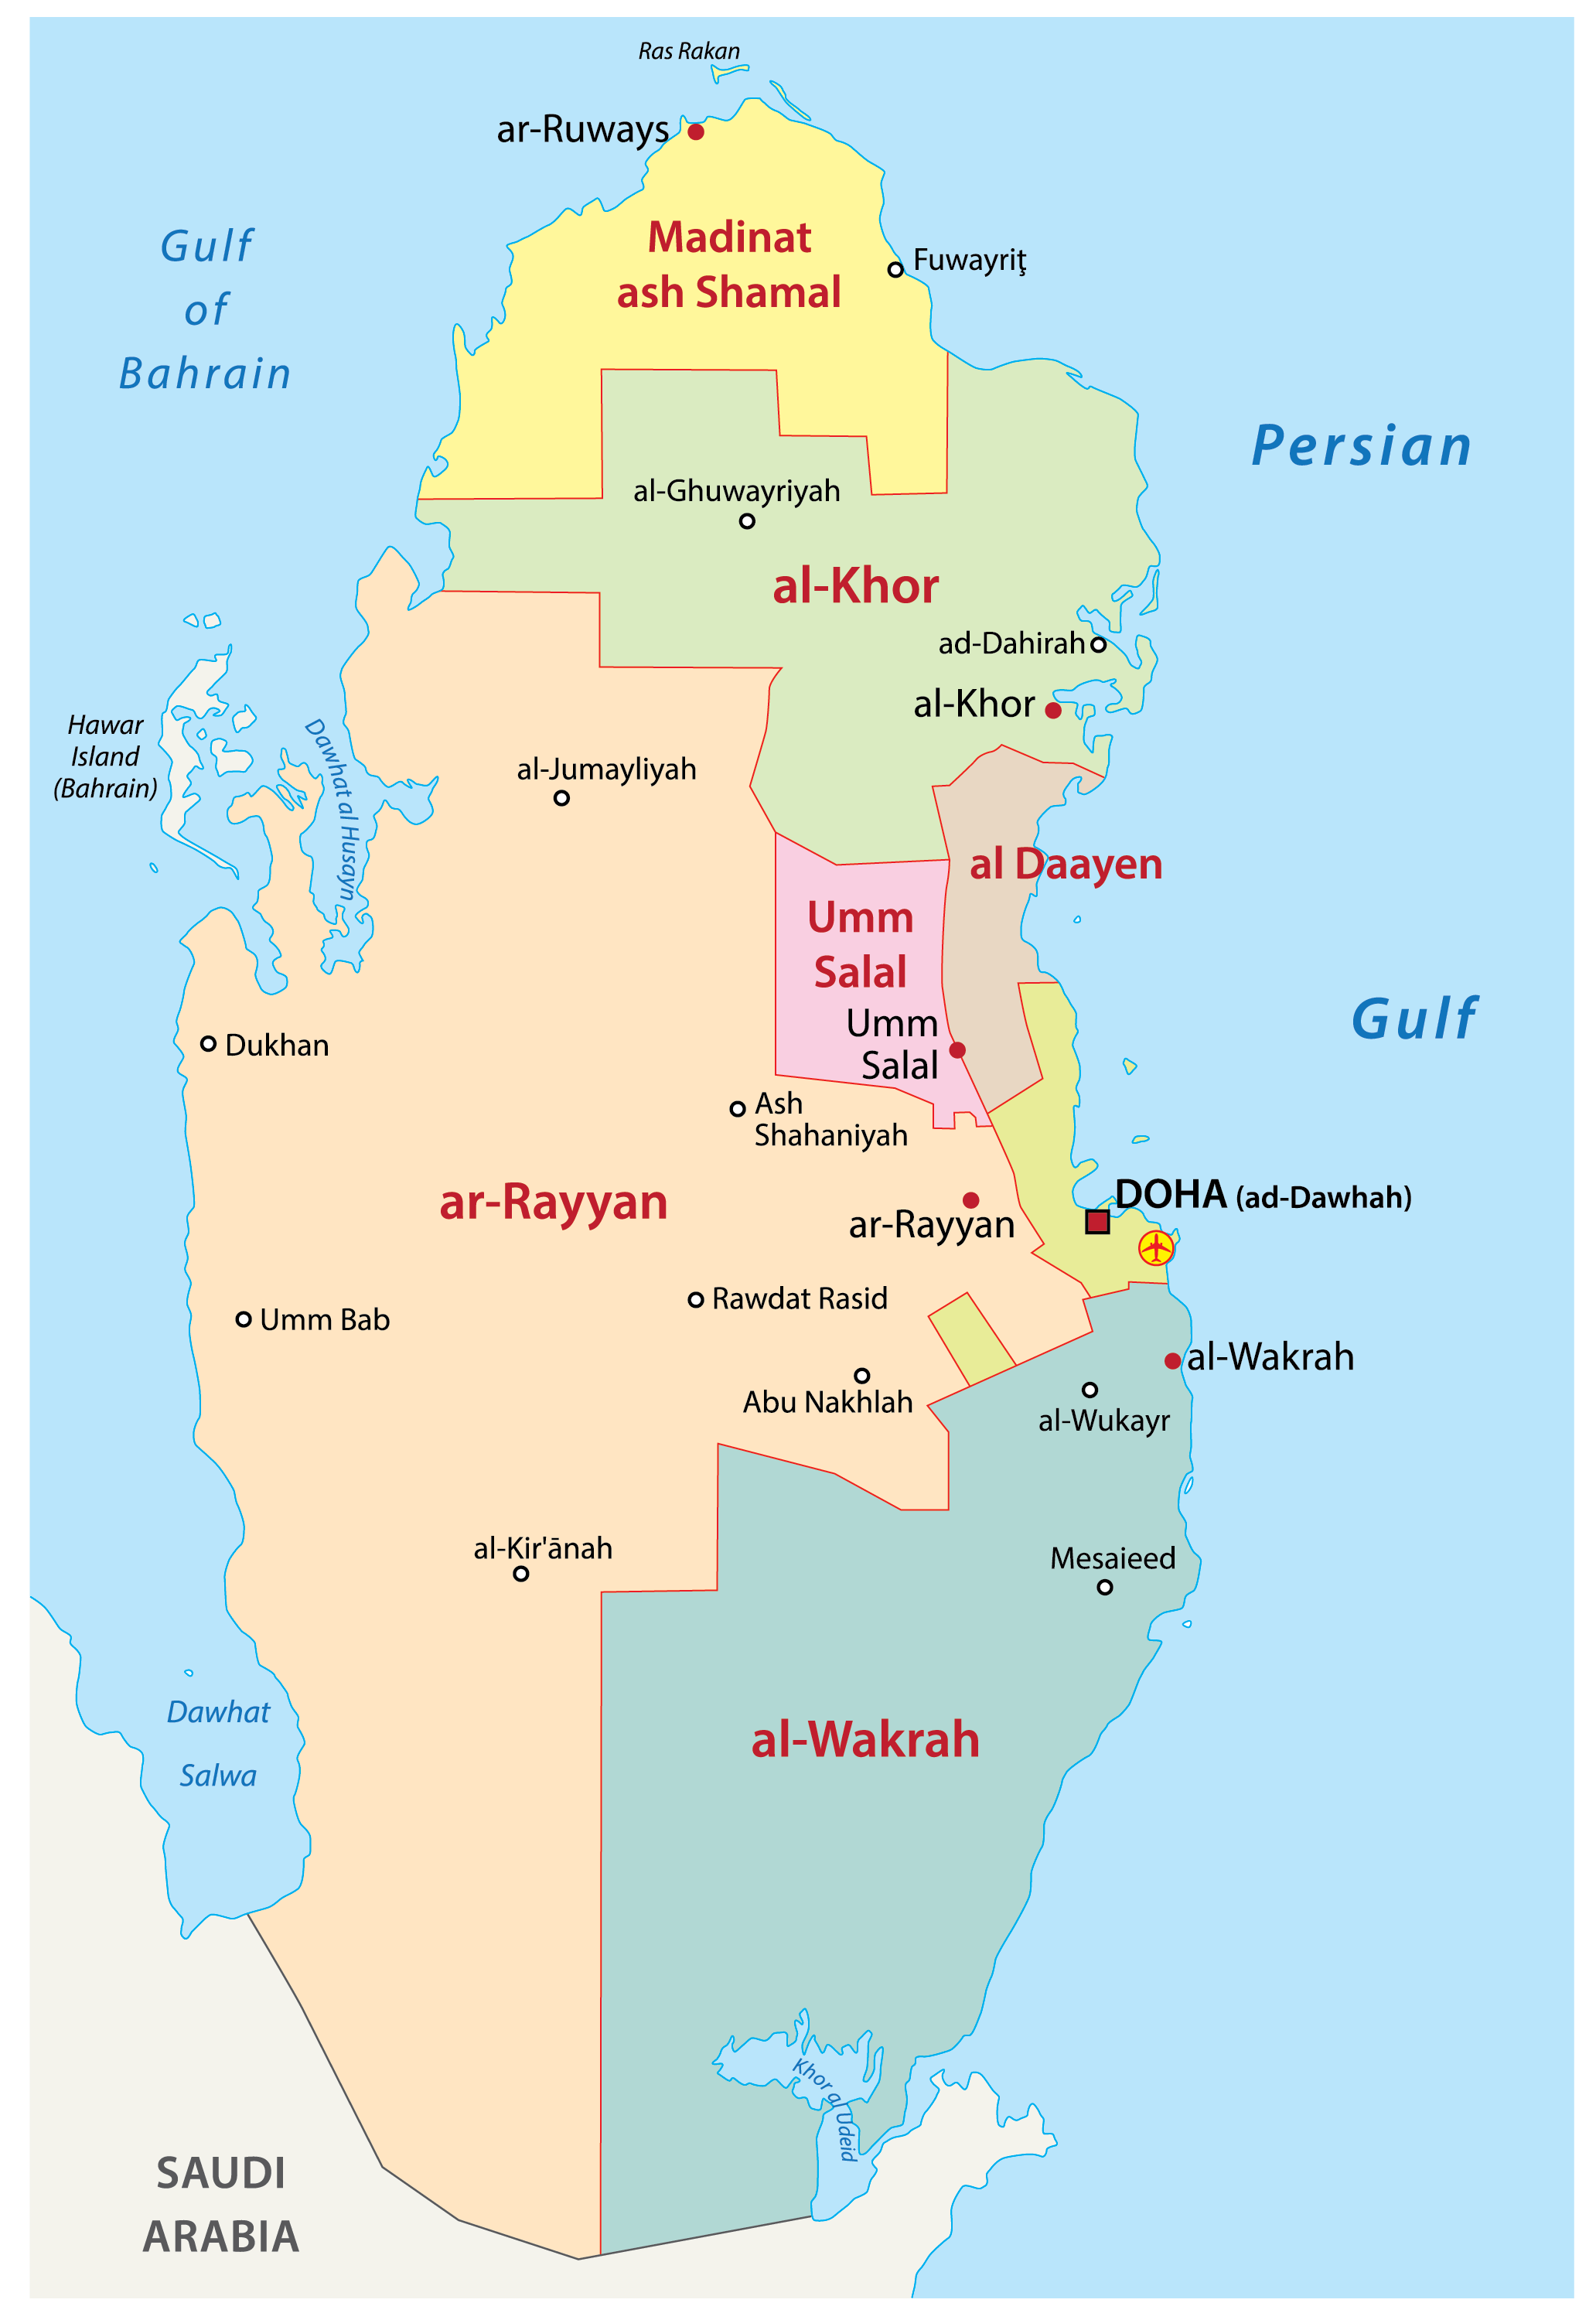 Political Map of Qatar showing the 8 municipalities, their capitals, and the national capital of Doha.